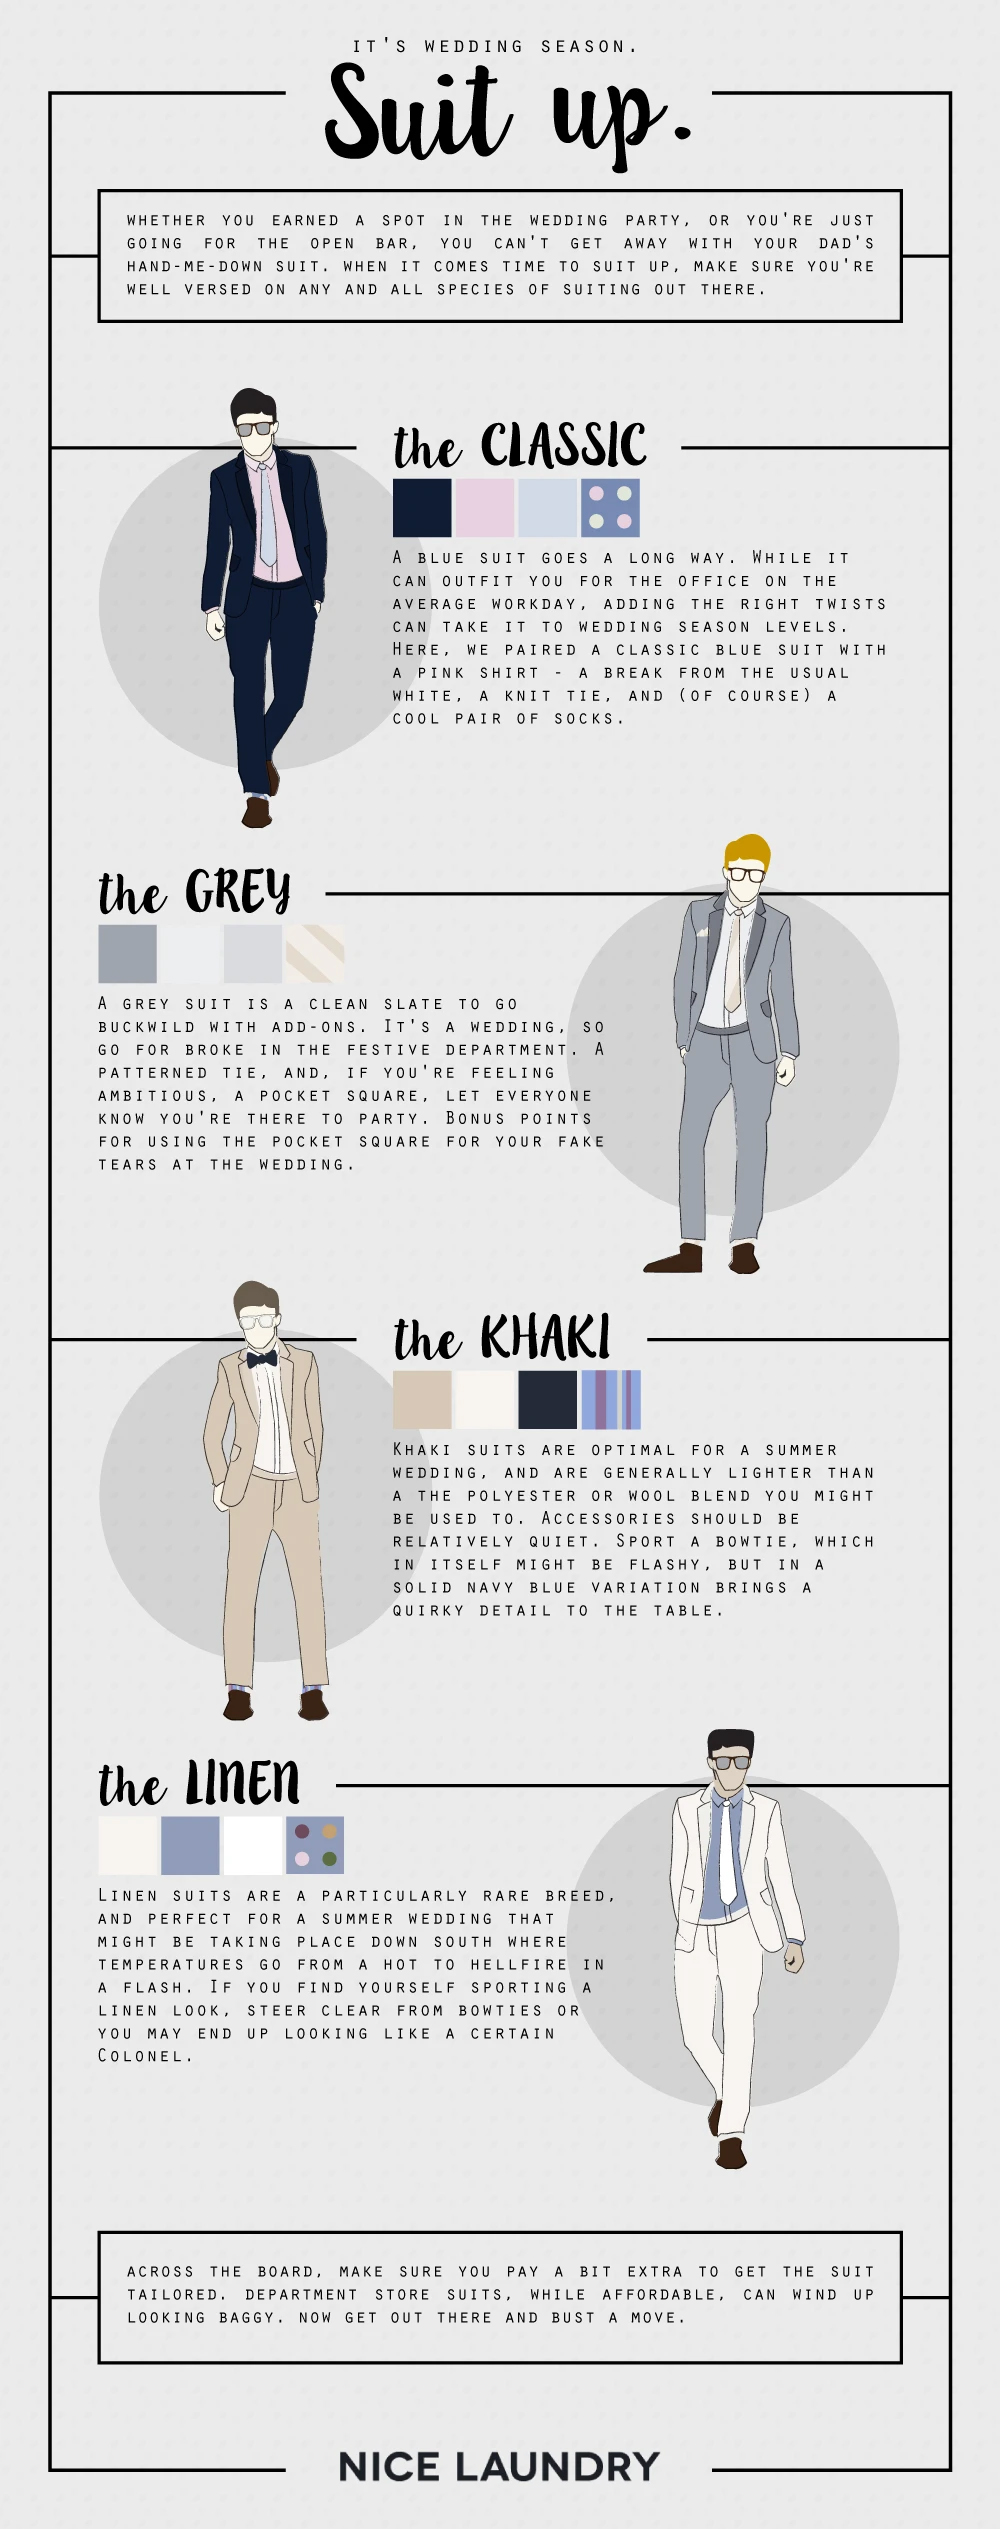 Suit Up Right This Wedding Season: 4 Styles To Choose From - Infographic